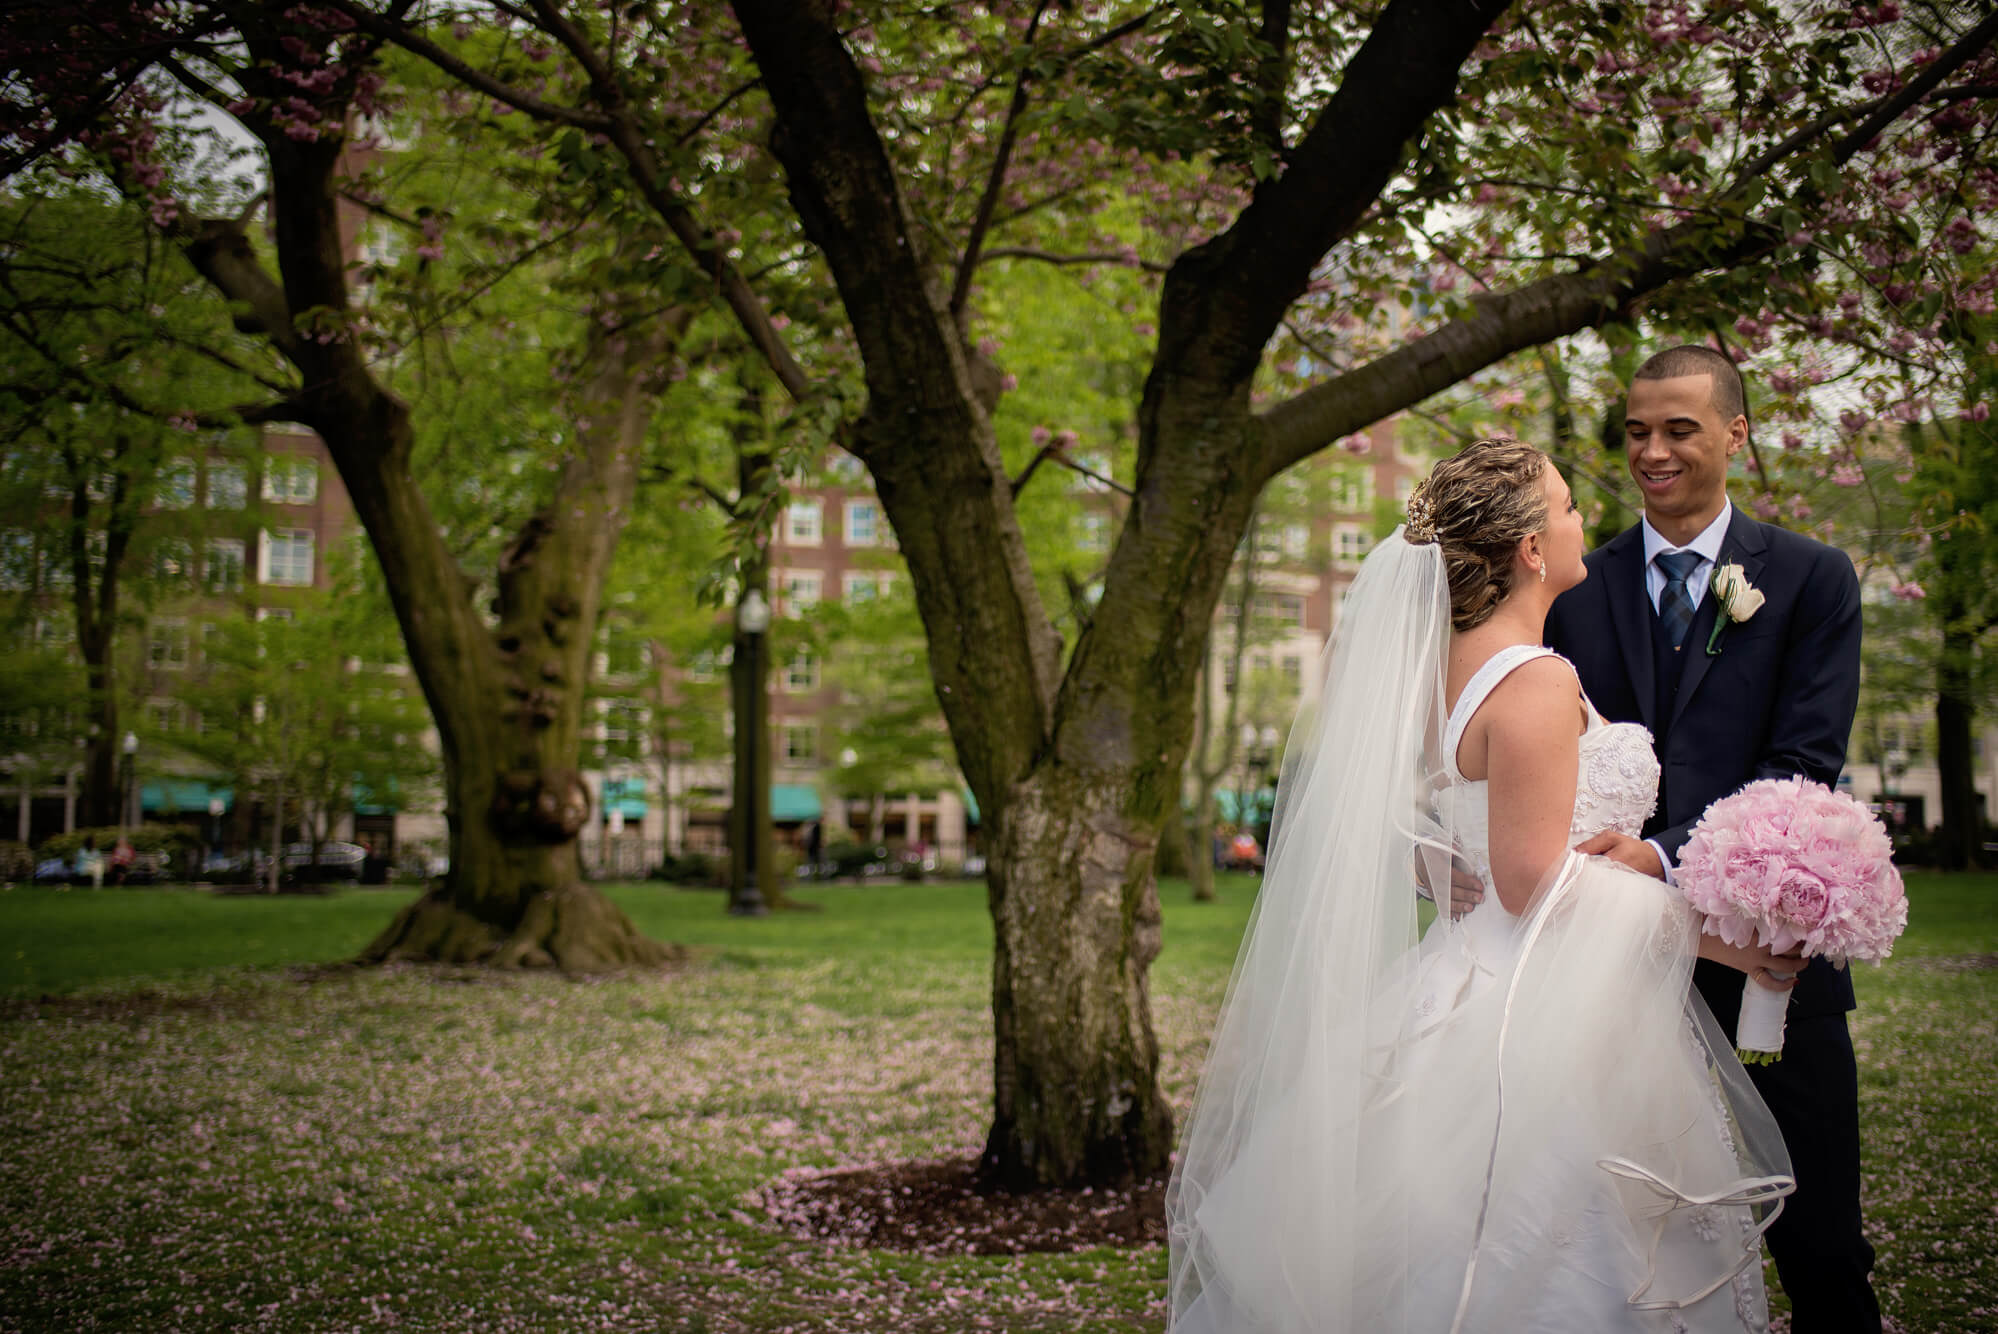 Boston Wedding Photographer Kate McElwee  Wedding Photography in New England and Destinations